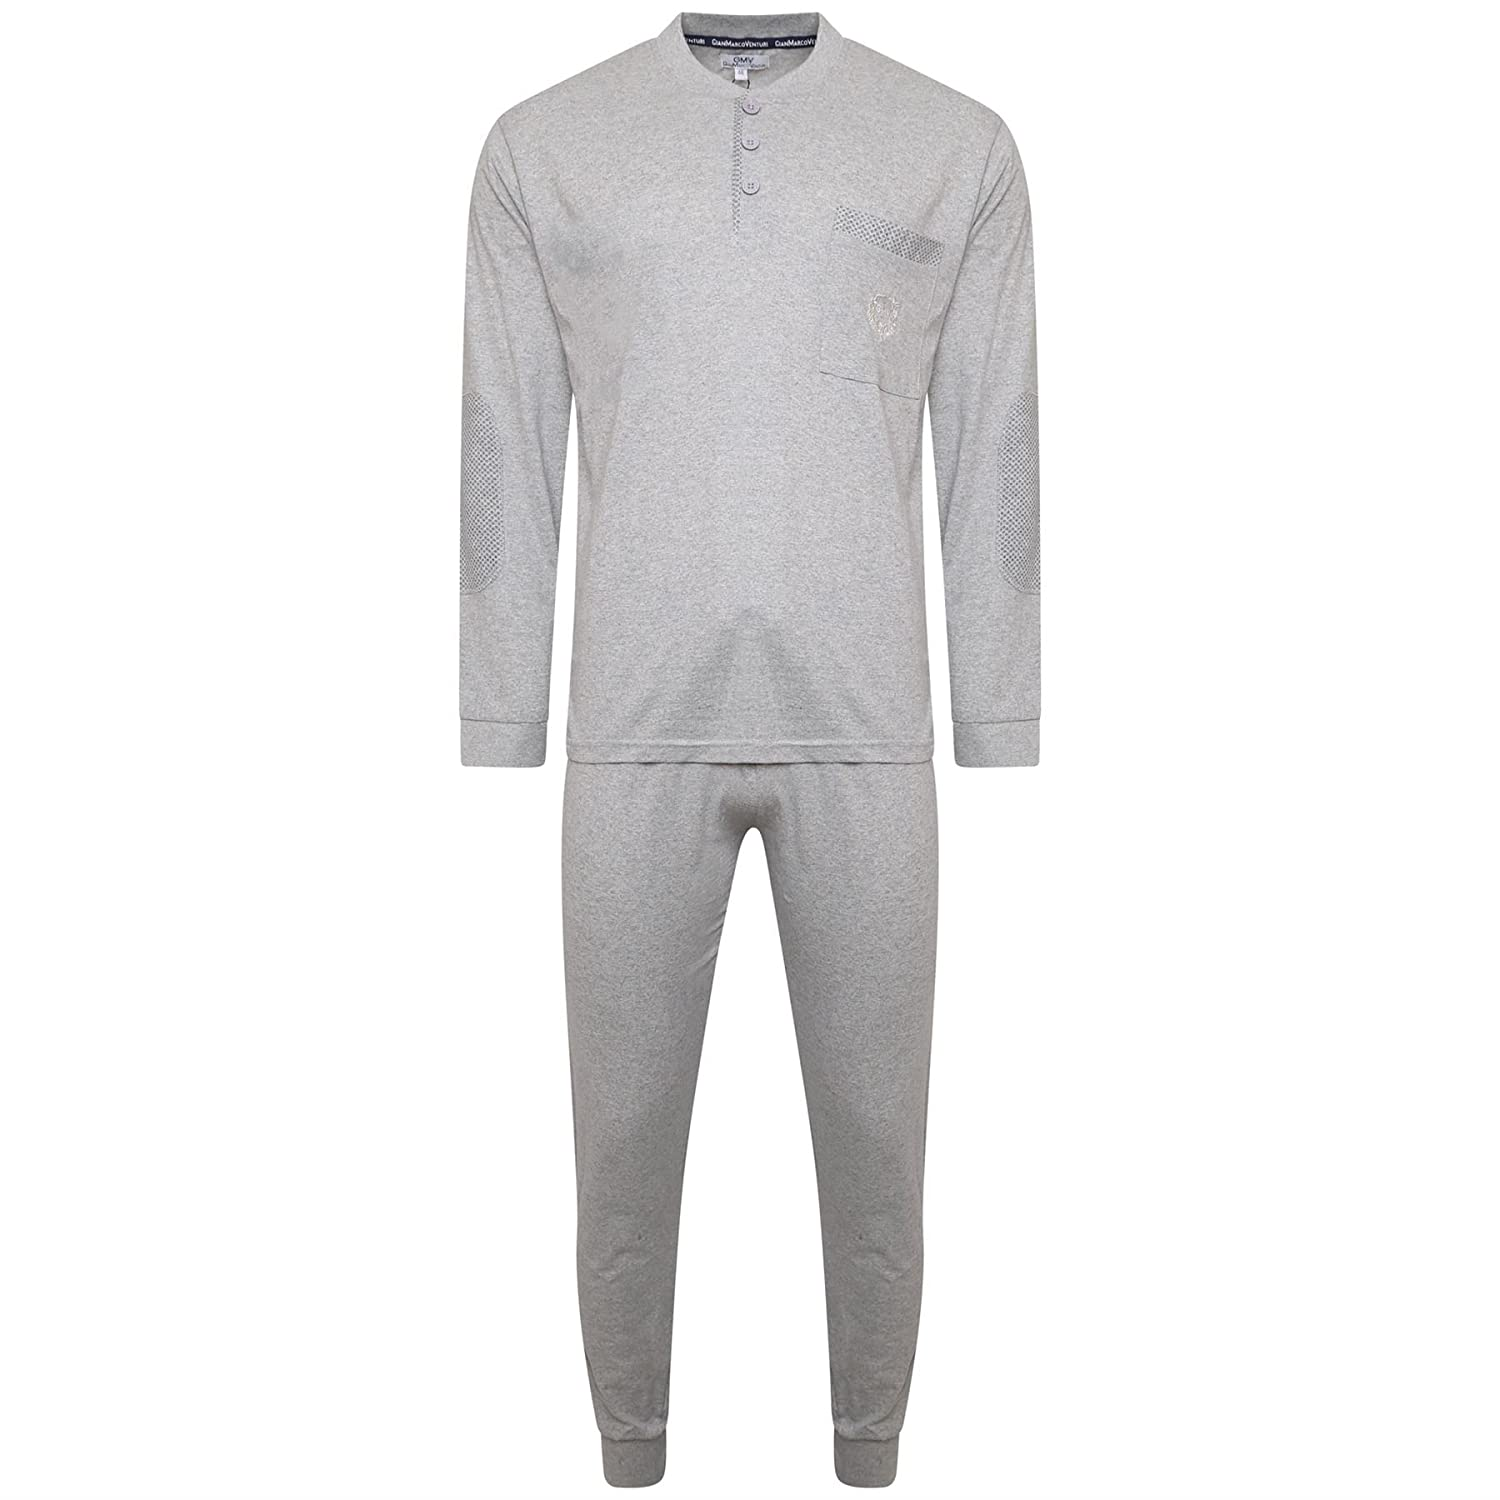 New Mens 100% Cotton Pyjamas Pjs Loungewear Set Nightwear Longsleeve Top & Pant Style It Up